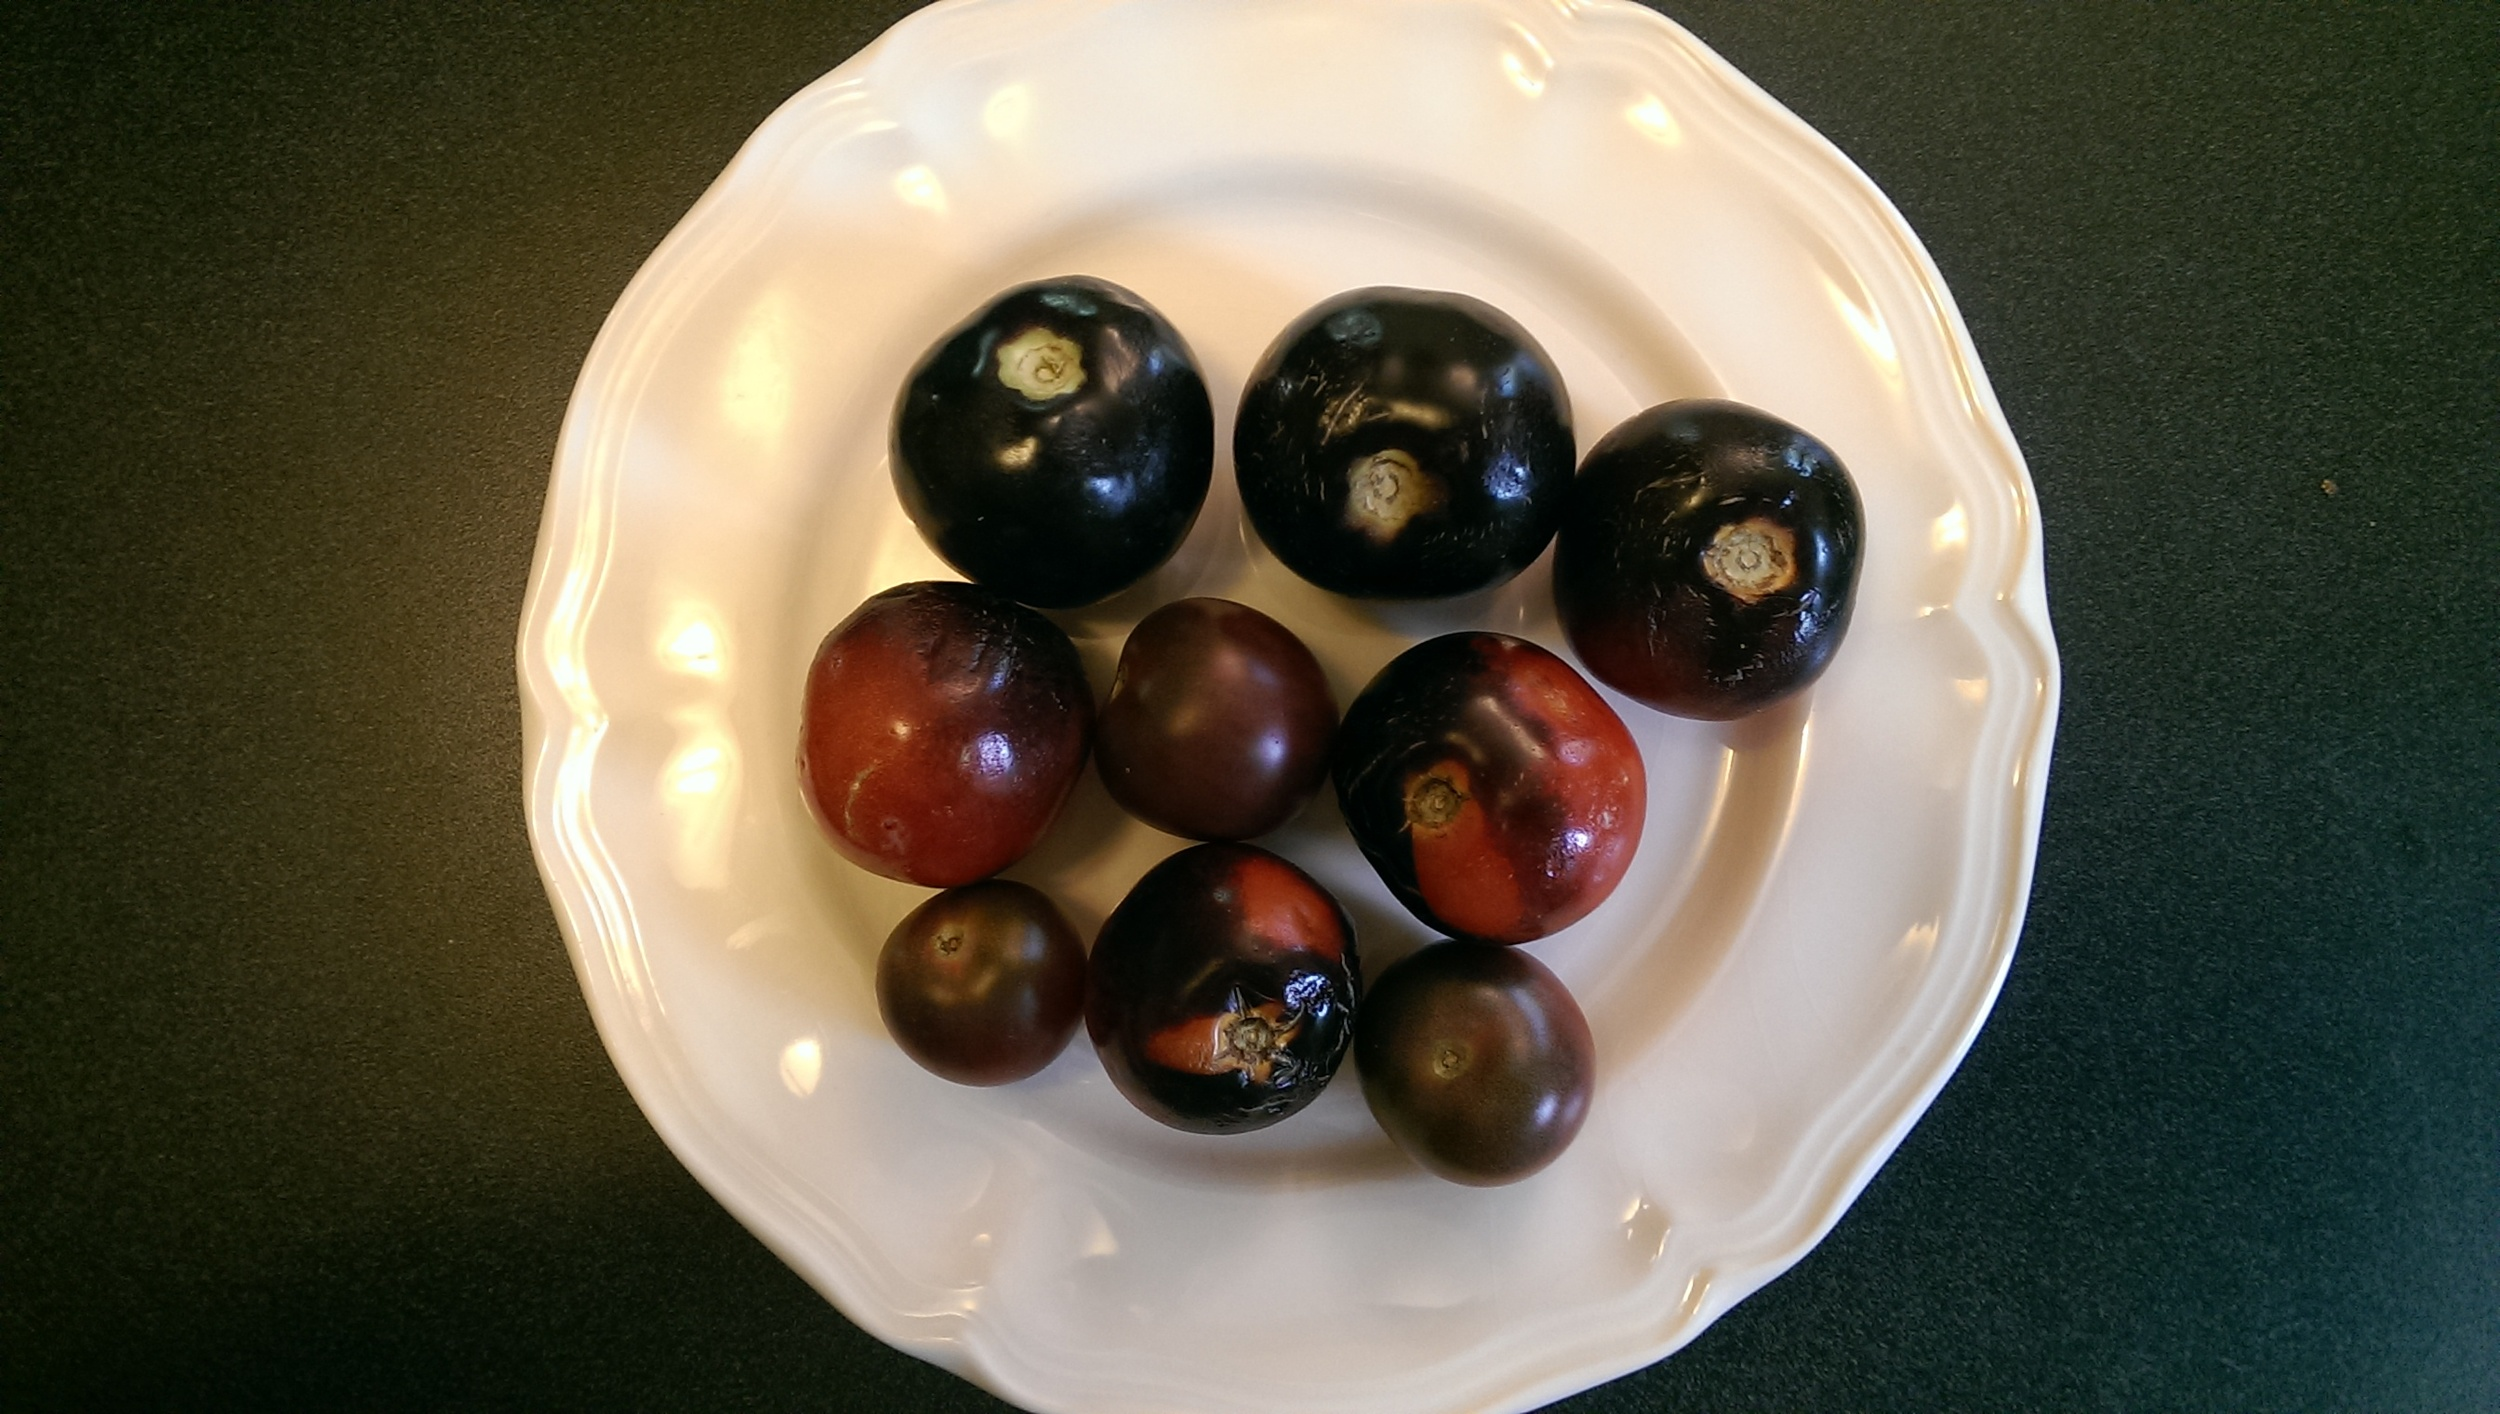 This is not your ordinary tomato! It looks like a plum, but these Indigo Rose and Black Cherry tomatoes from Peace Haven Farm in Becket, MA are delicious and loaded with lycopene.